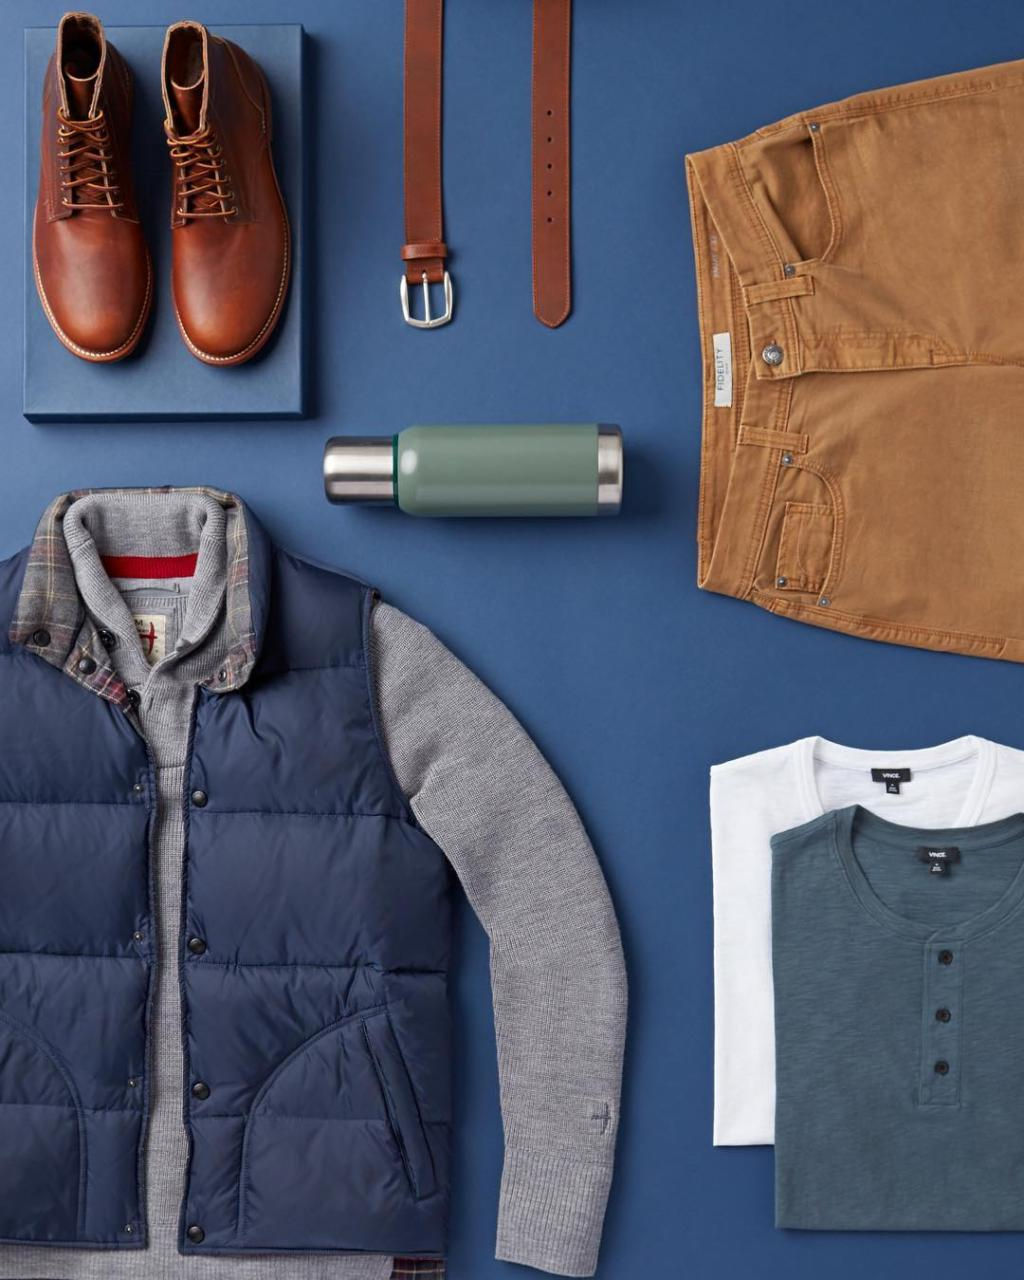 How Does Trunk Club Work?